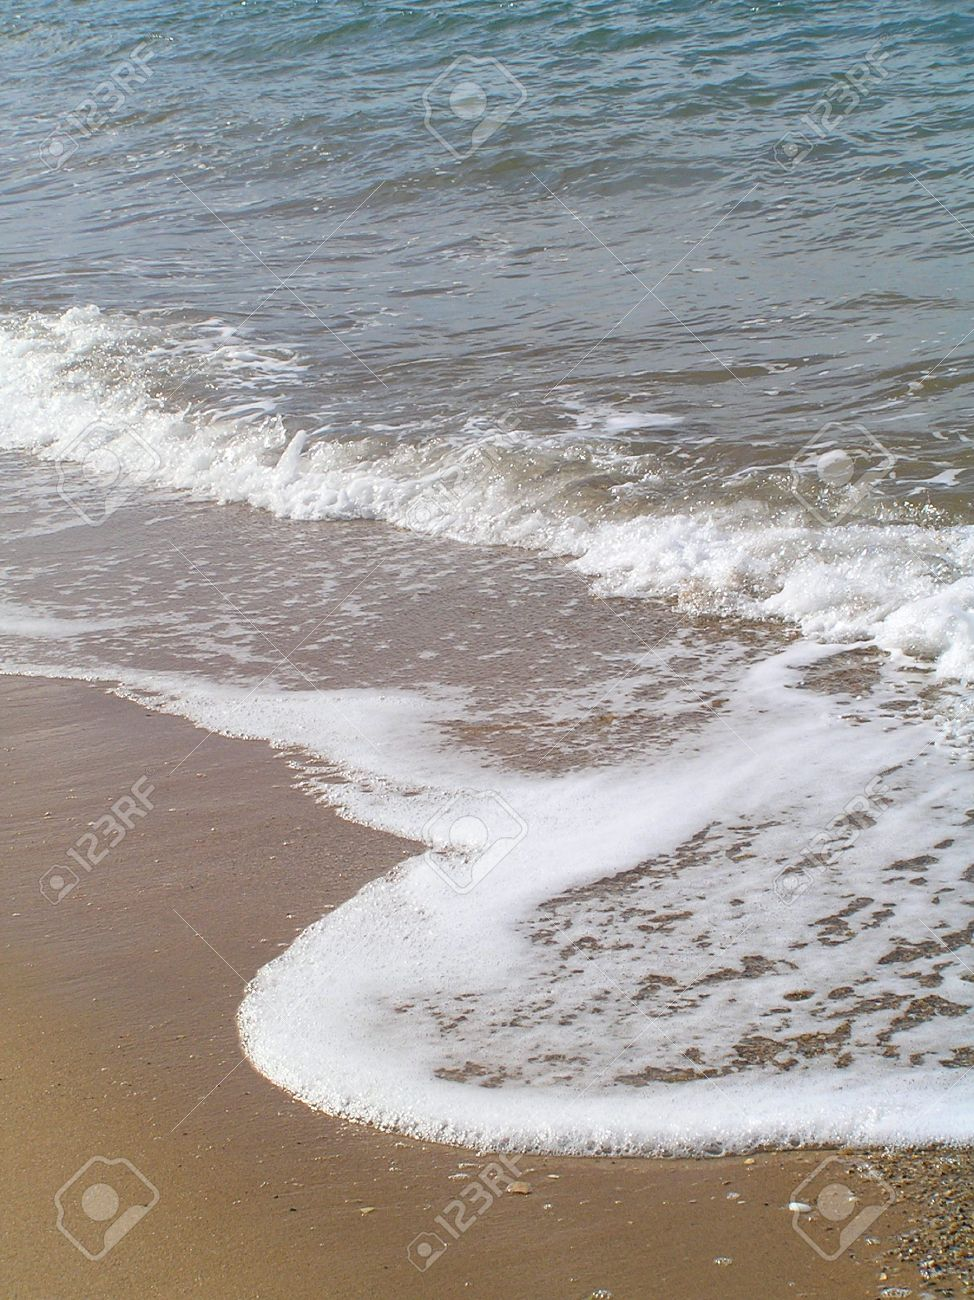 A small frothy sparkling ocean tide rolling in on the wet sand